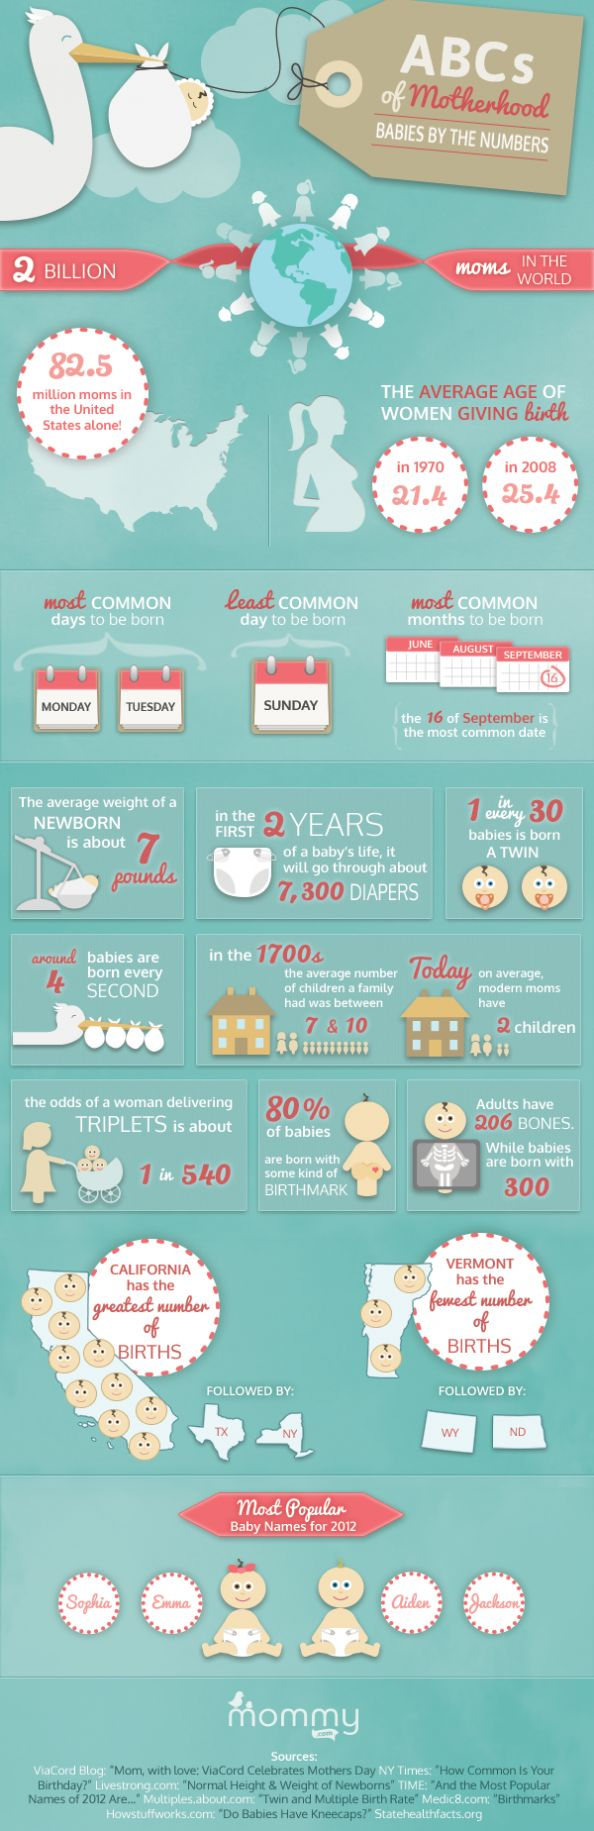 ABCs of Motherhood Infographic & my birthday is September 16th!!! and my son was born on a Sunday :)